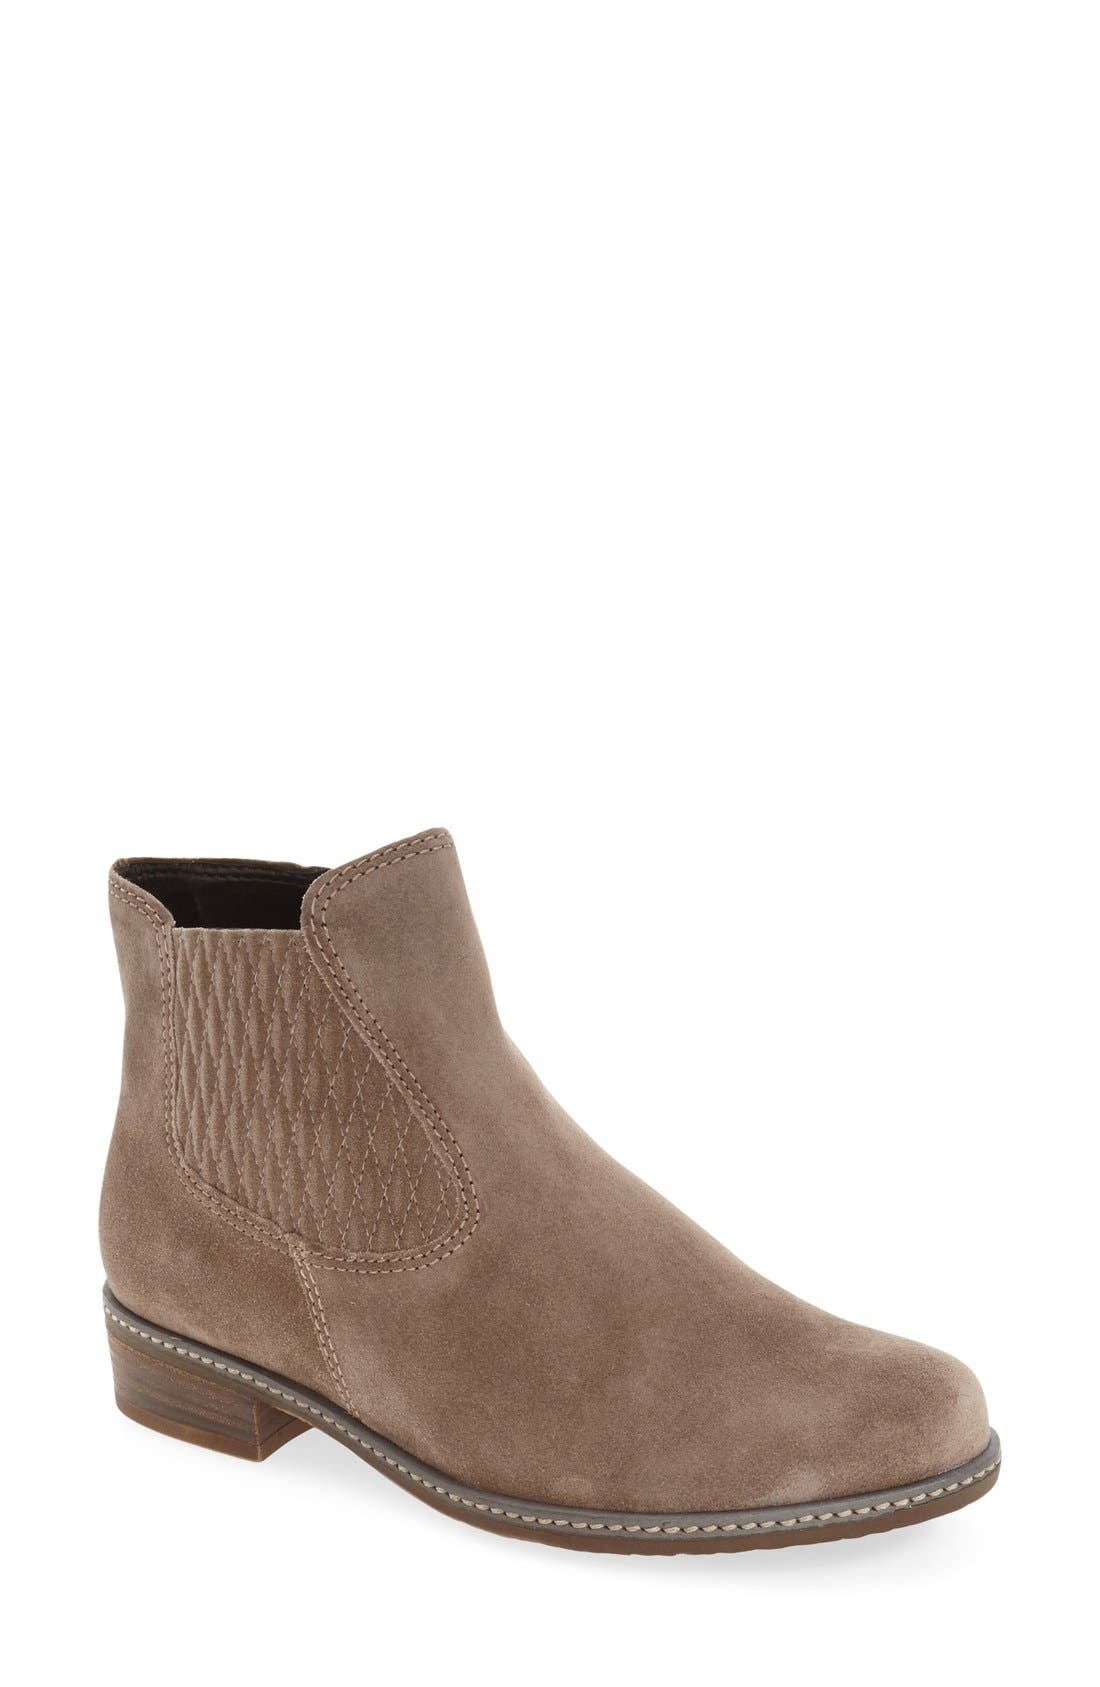 Chelsea Boot,                             Main thumbnail 1, color,                             GREY LEATHER